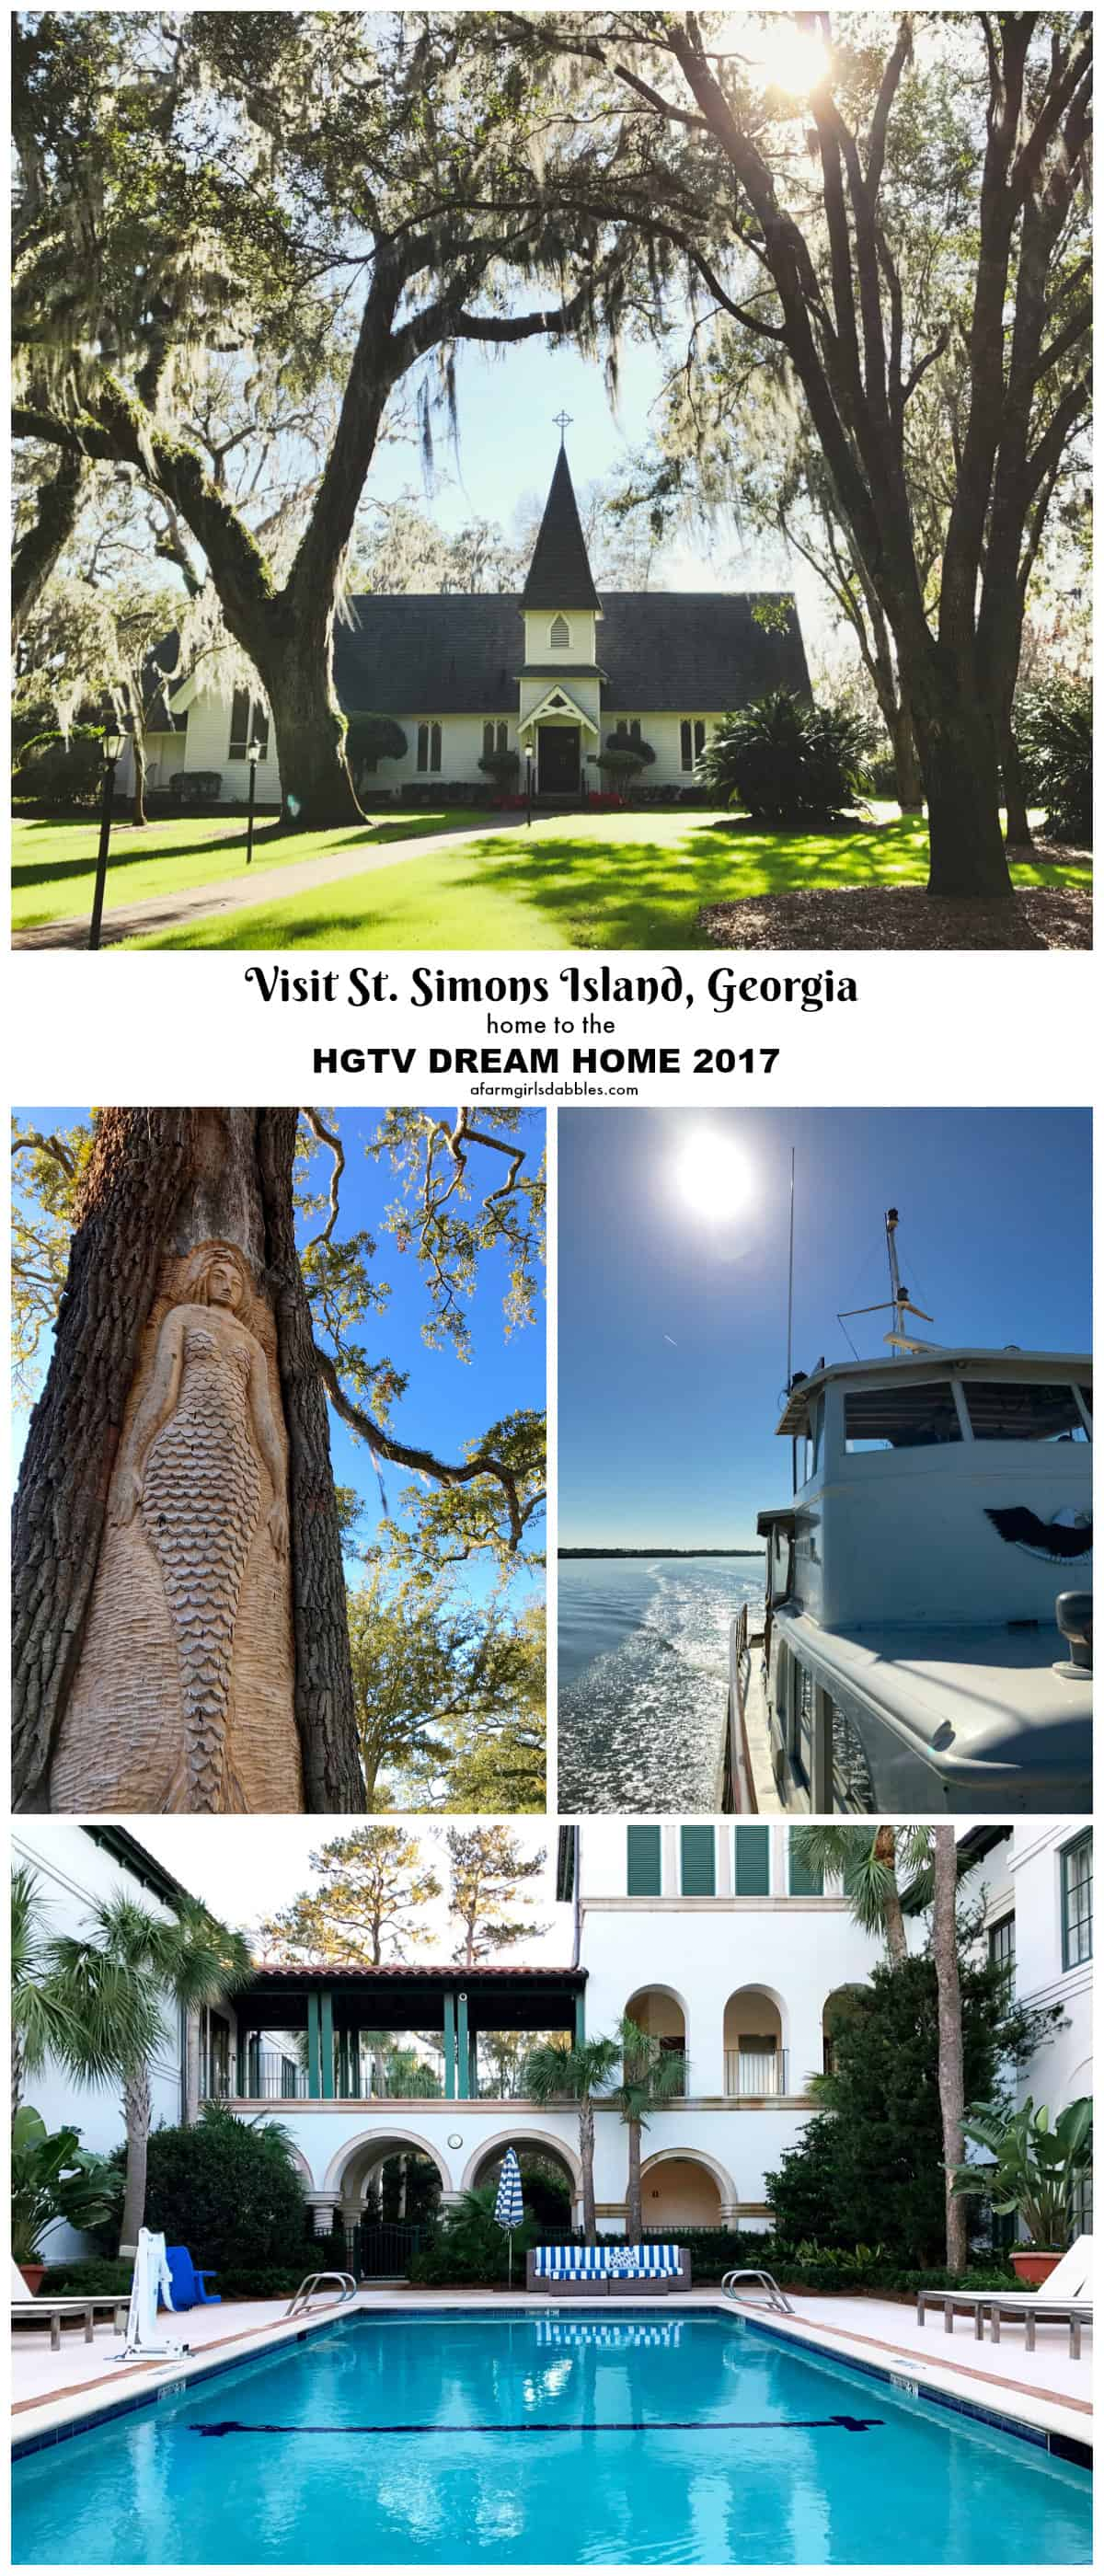 Visit St. Simons Island, Georgia - home to the HGTV Dream Home 2017 - from afarmgirlsdabbles.com